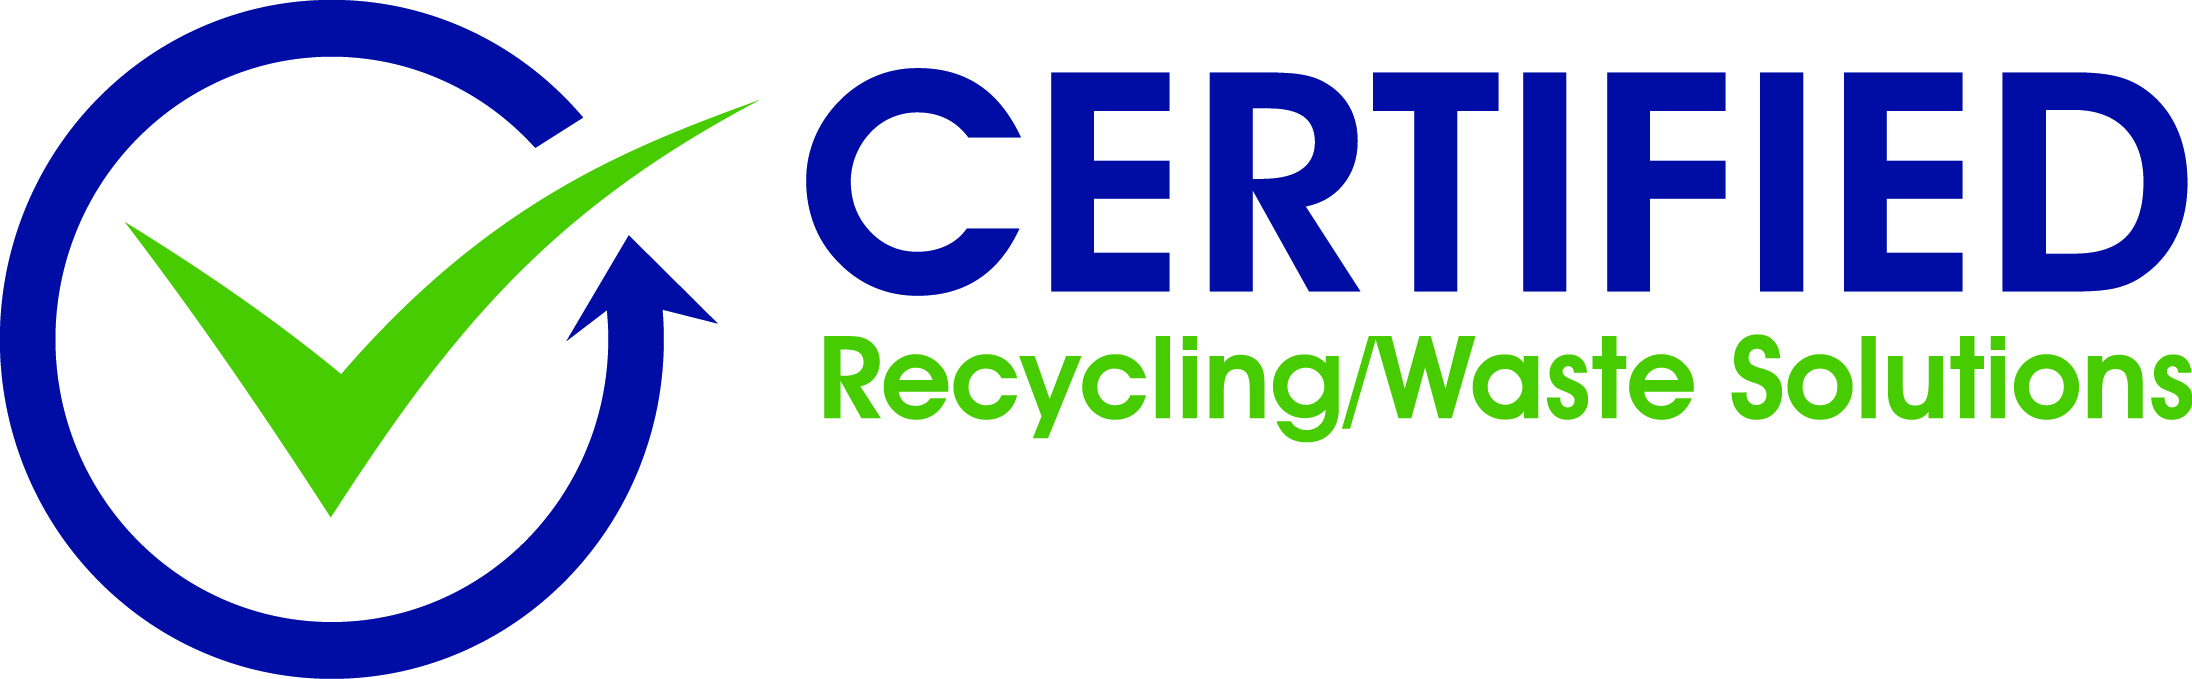 Certified Recycling Waste Solutions 555 S Rose St, Anaheim